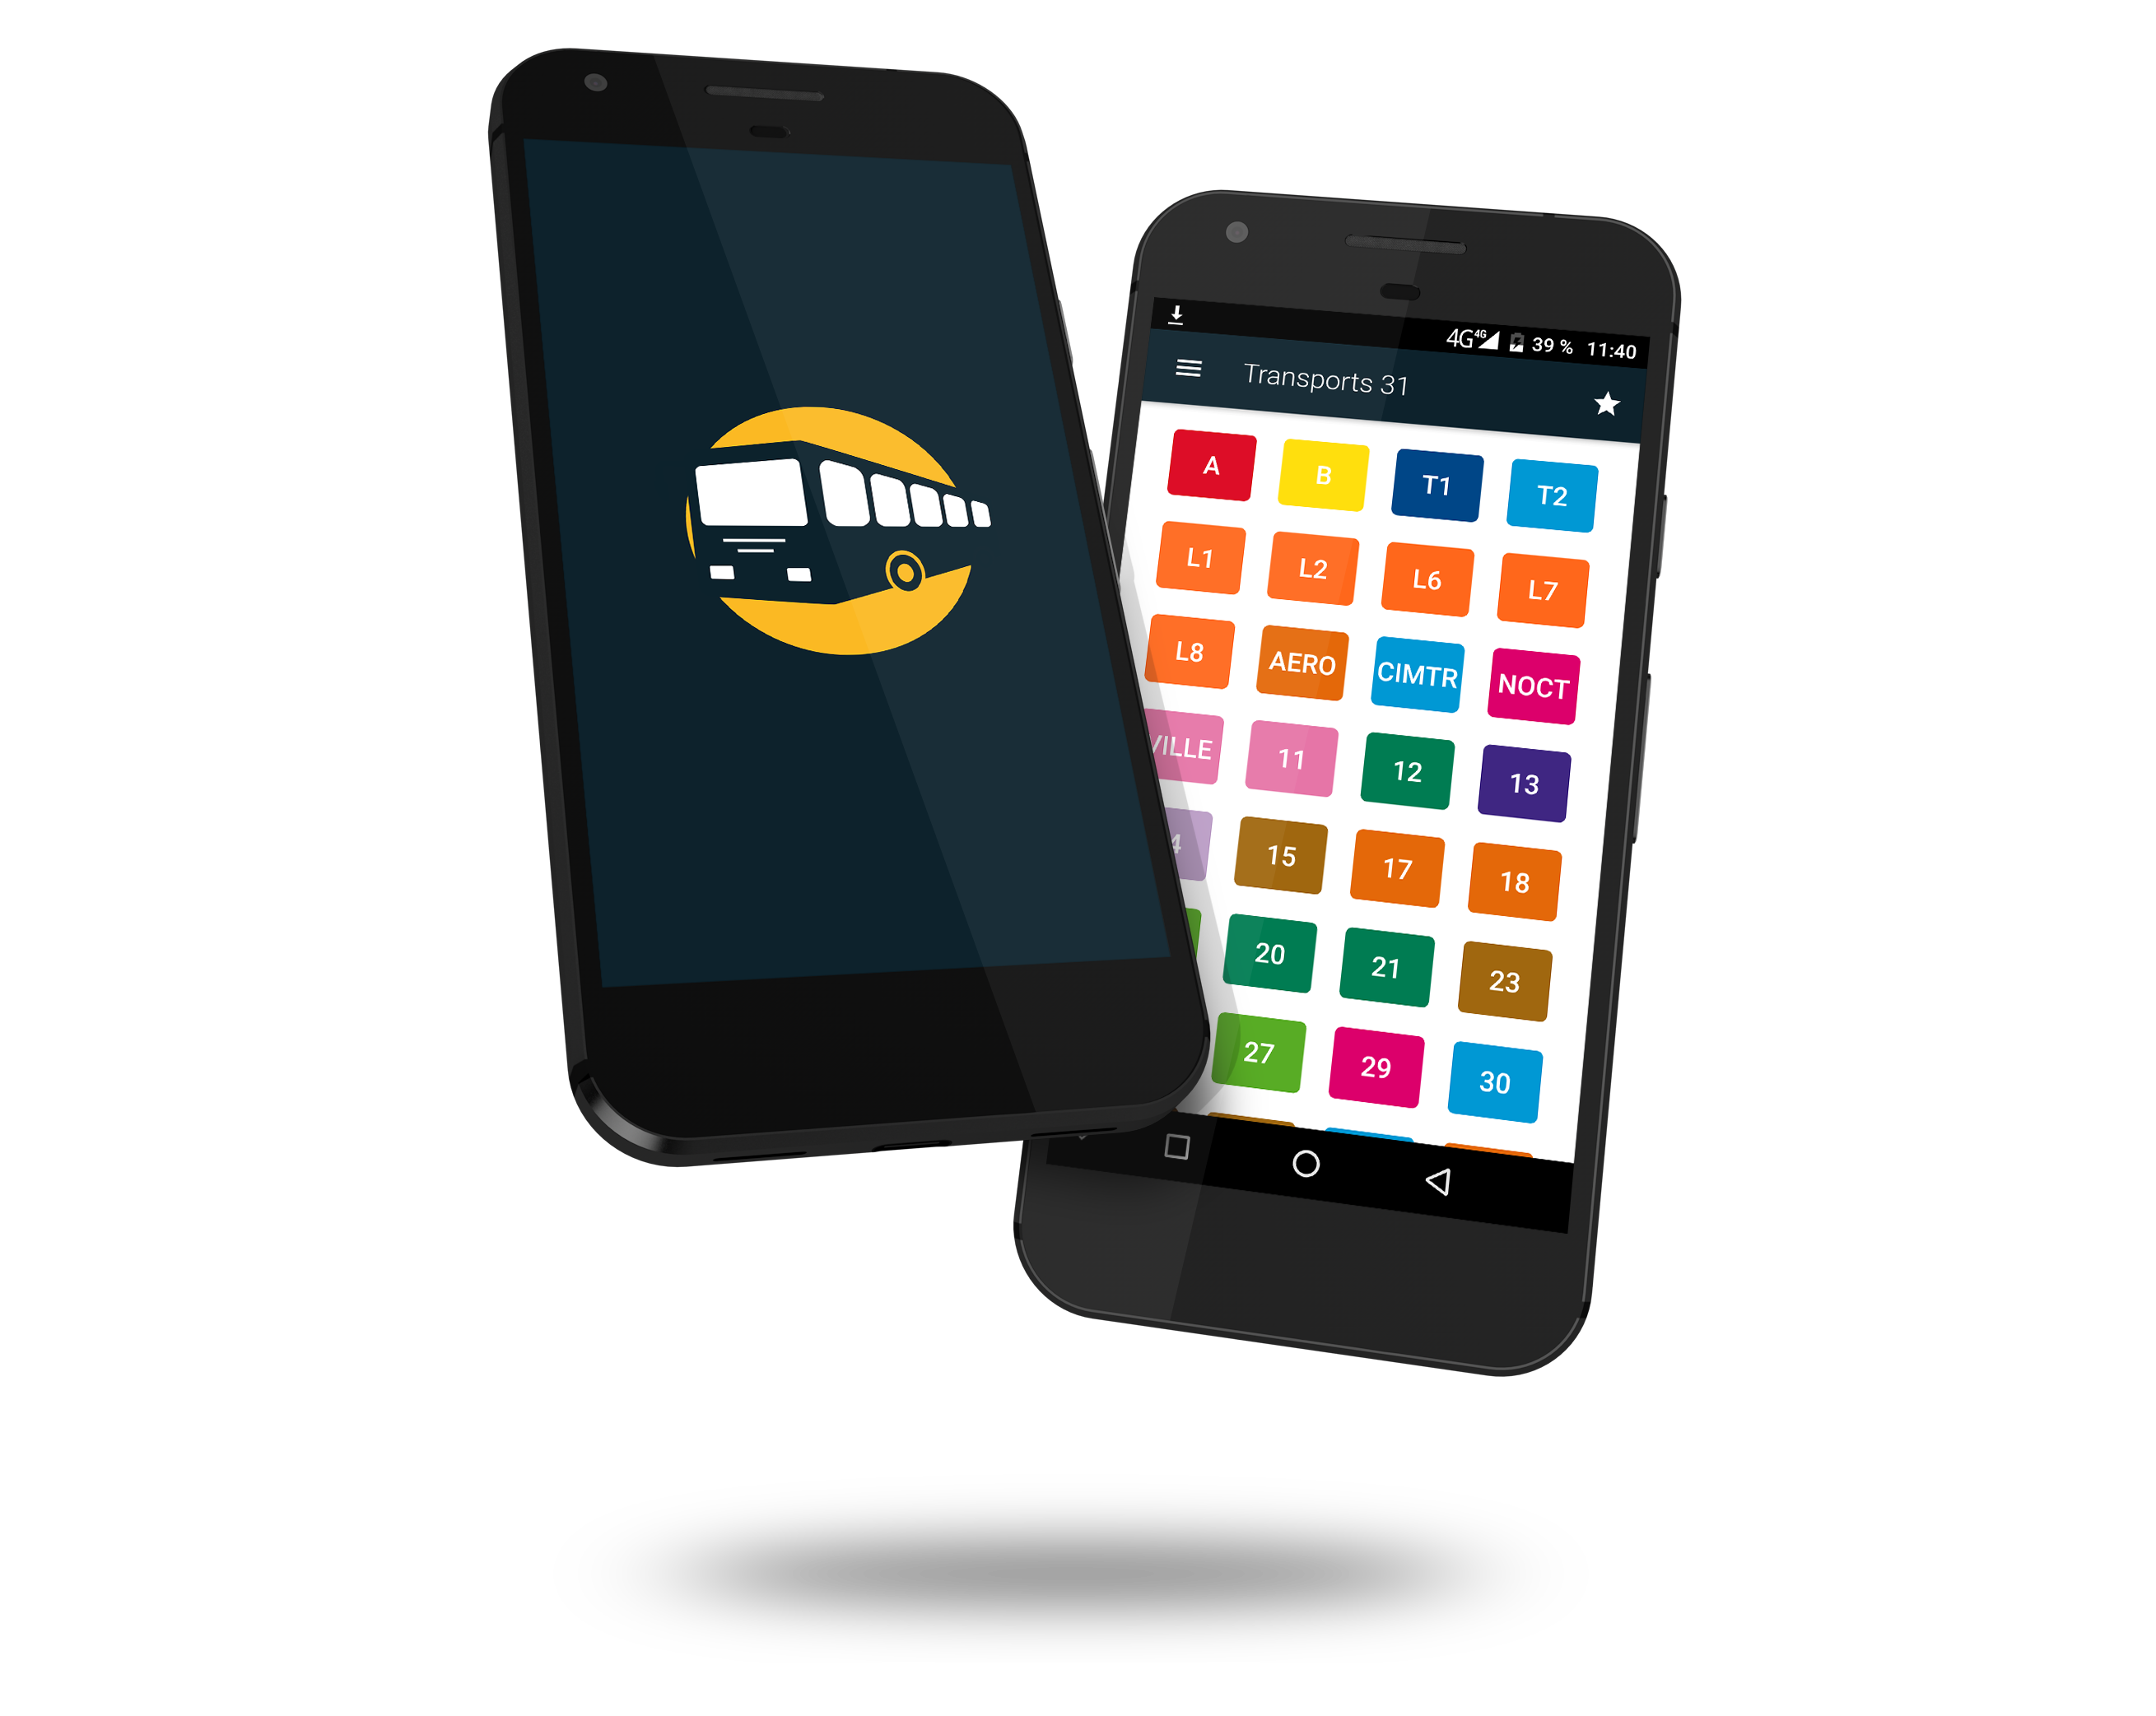 App Horaires Transports 31